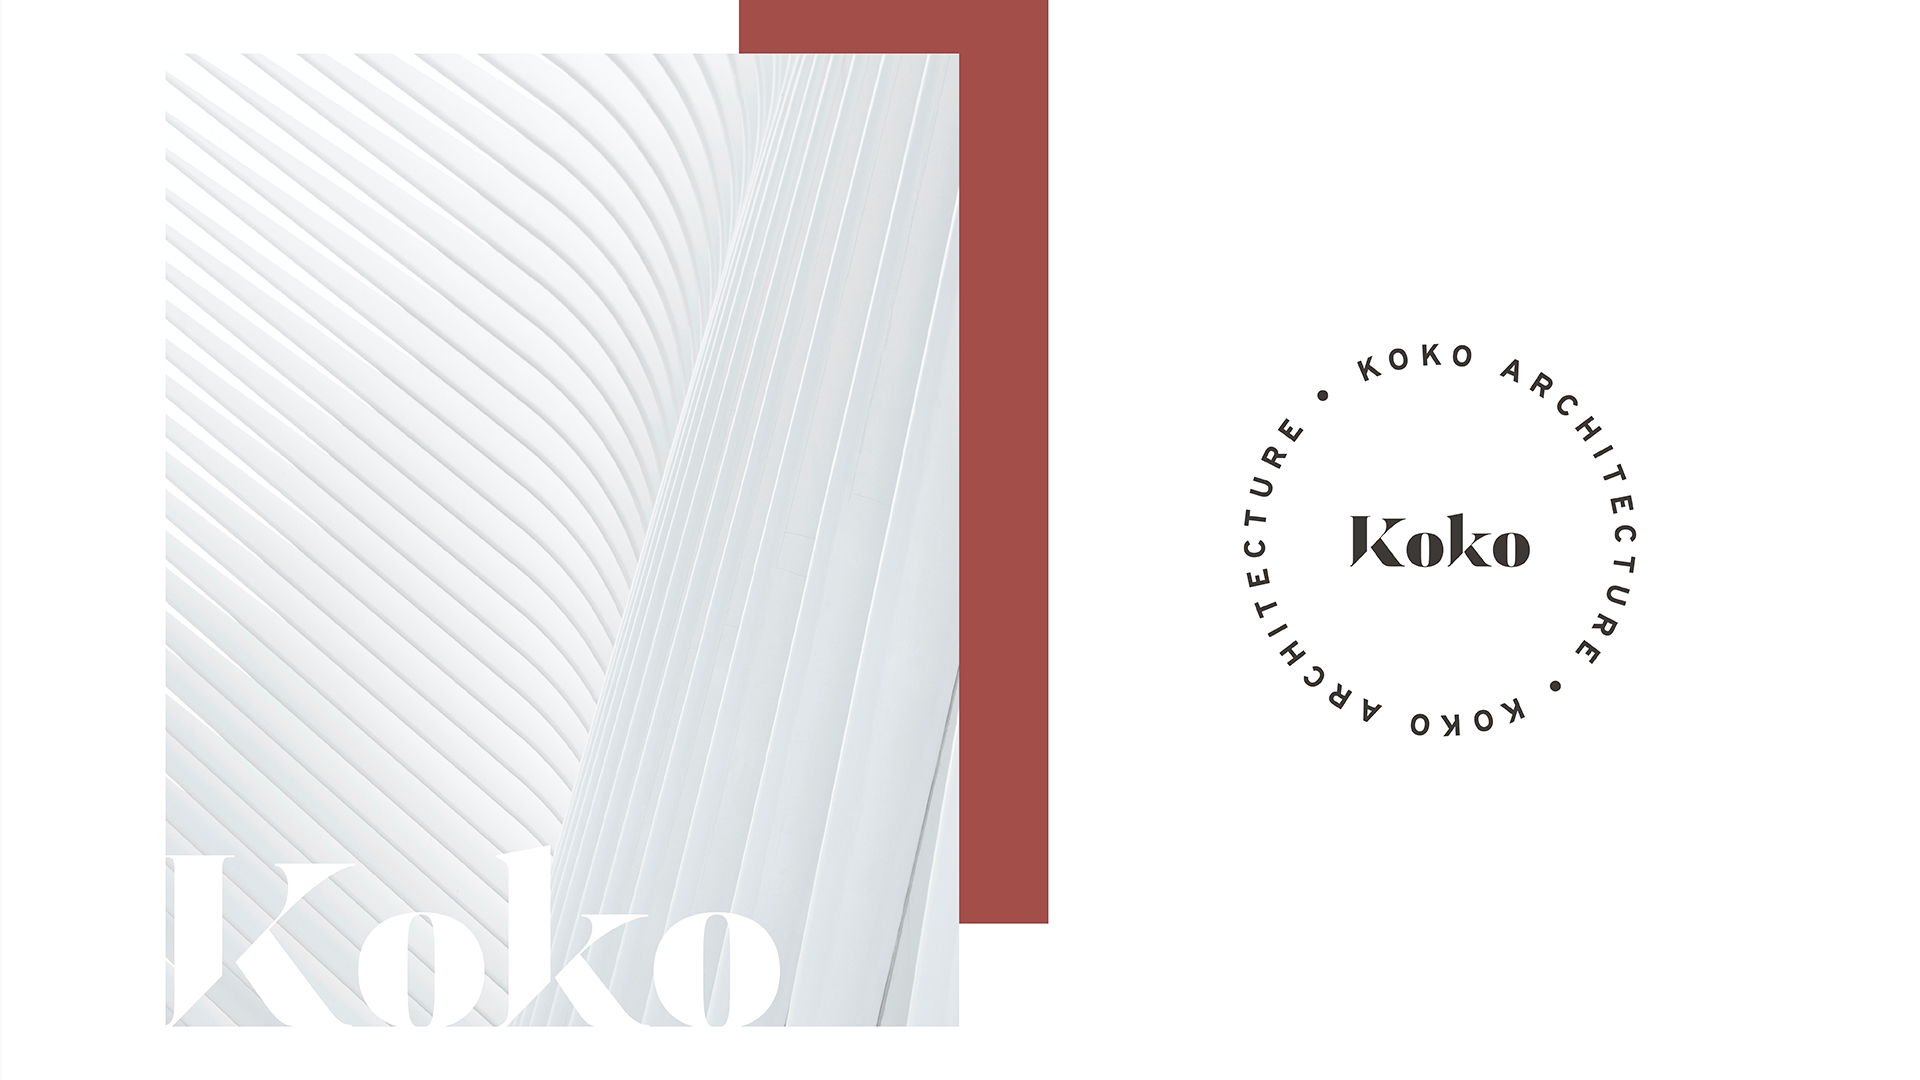 koko architecture logo photo